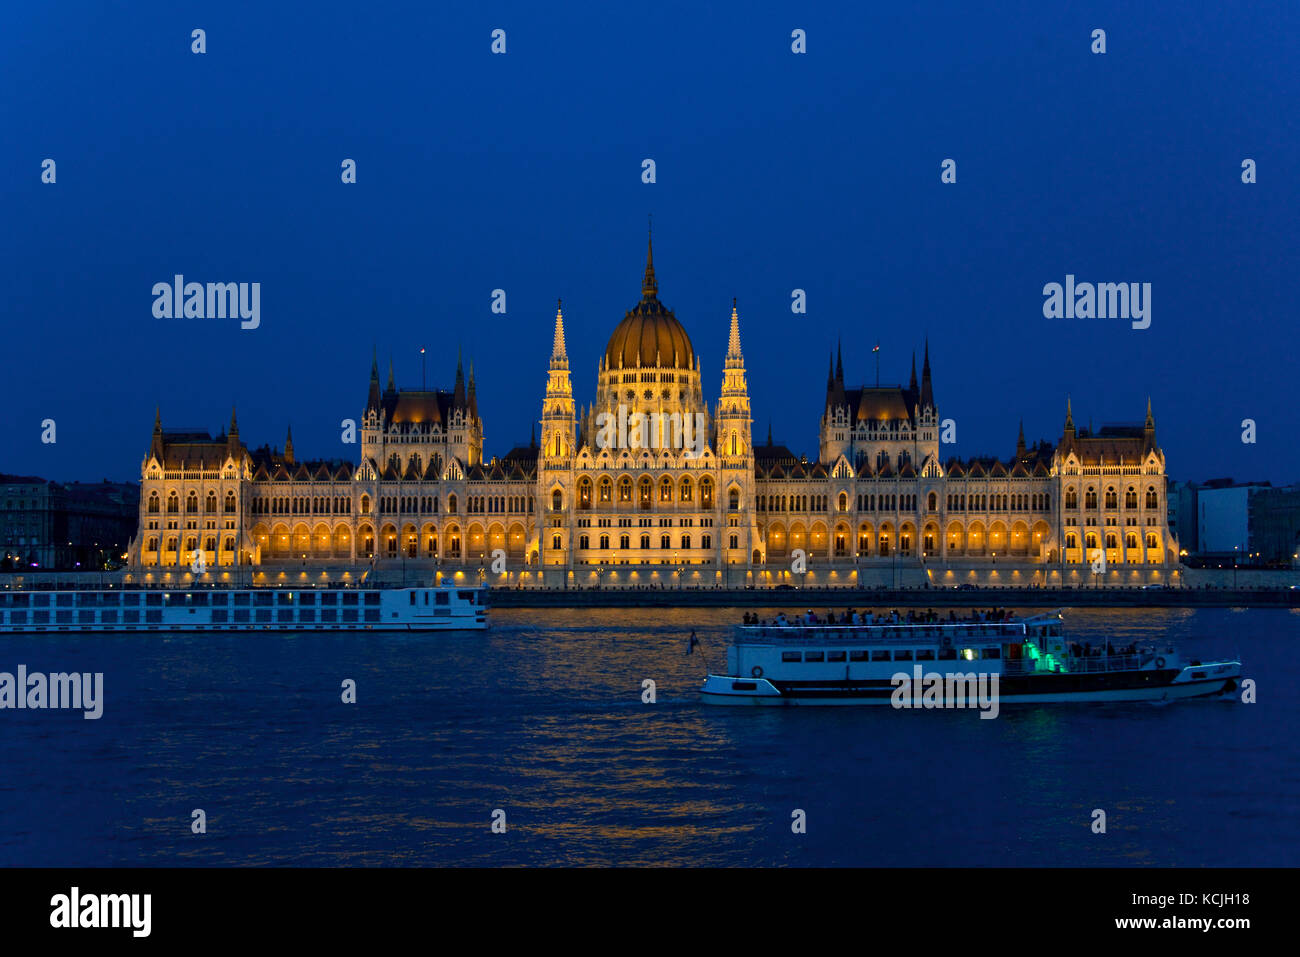 An evening nighttime view of the Hungarian Parliment Building on the Danube river in Budapest with a tourist river - Stock Image